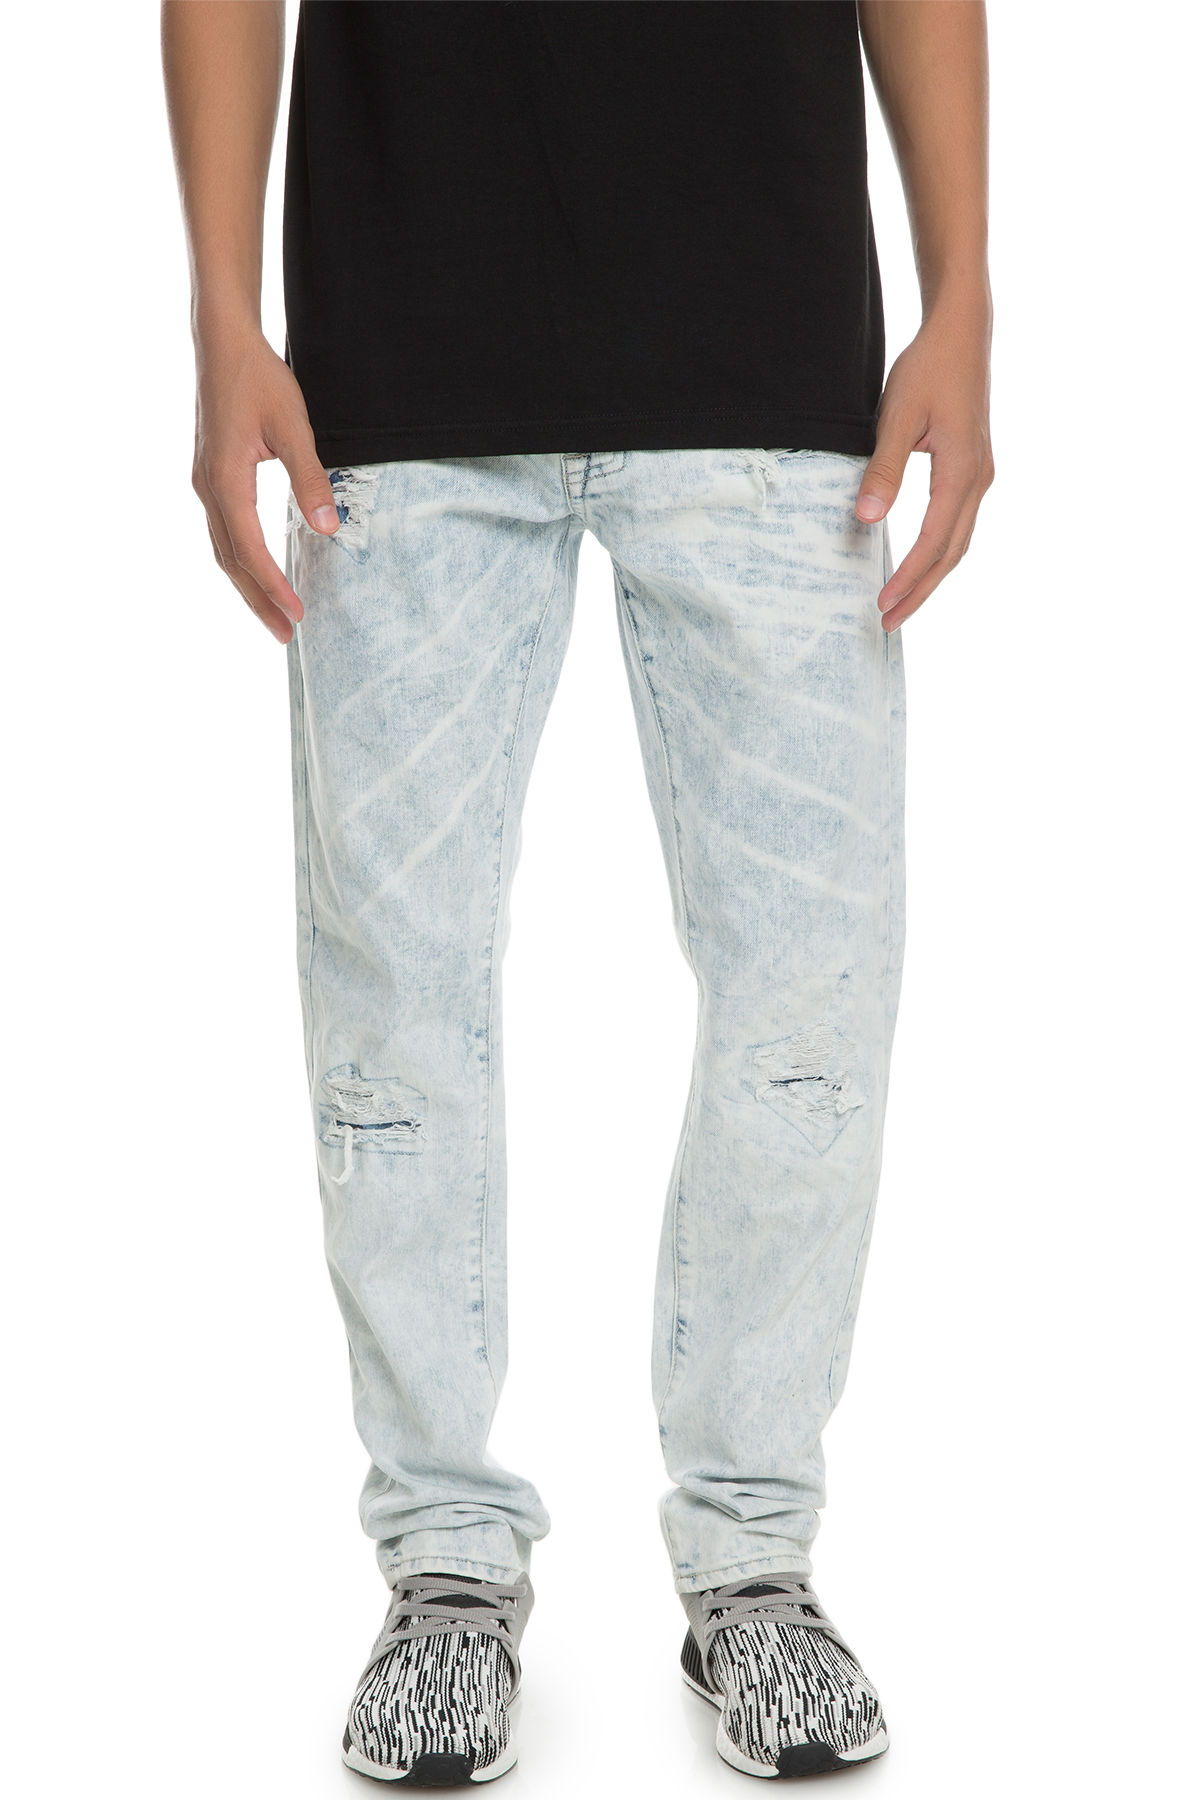 Image of The Dagger Slim Jeans in Arctic Ice Blue